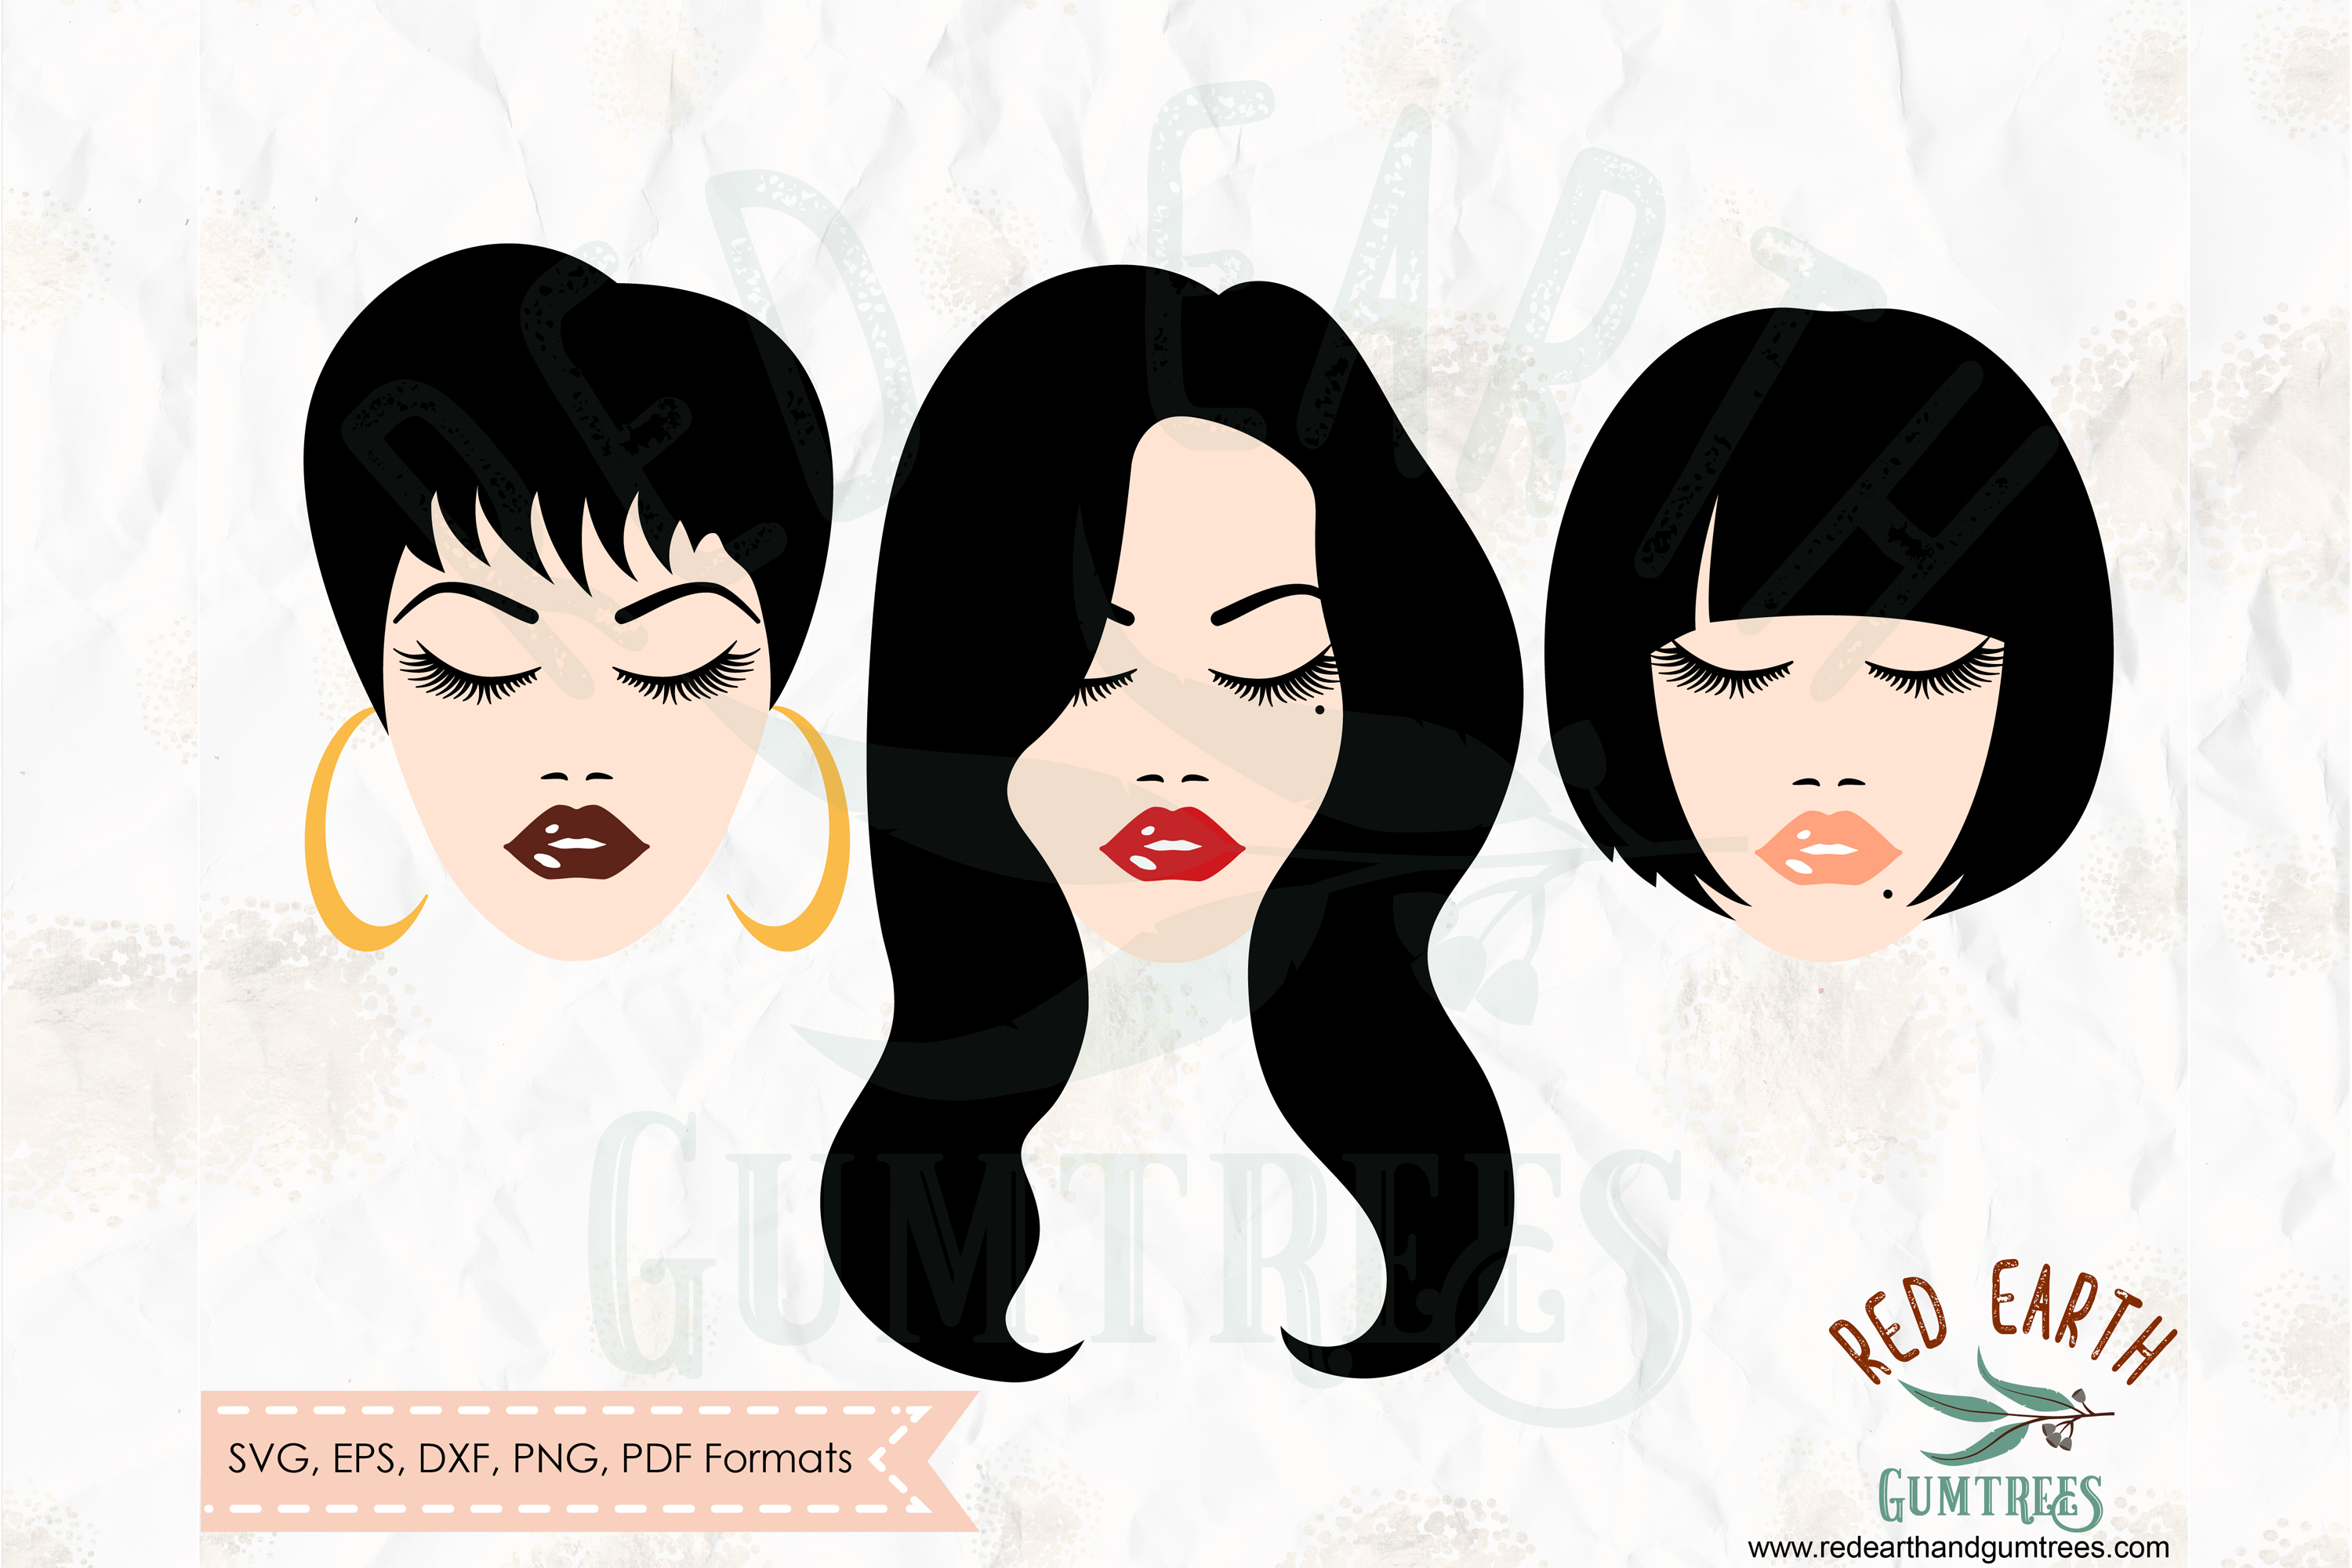 Woman with different hairstyles, lashes in SVG,DXF,PNG,EPS example image 1